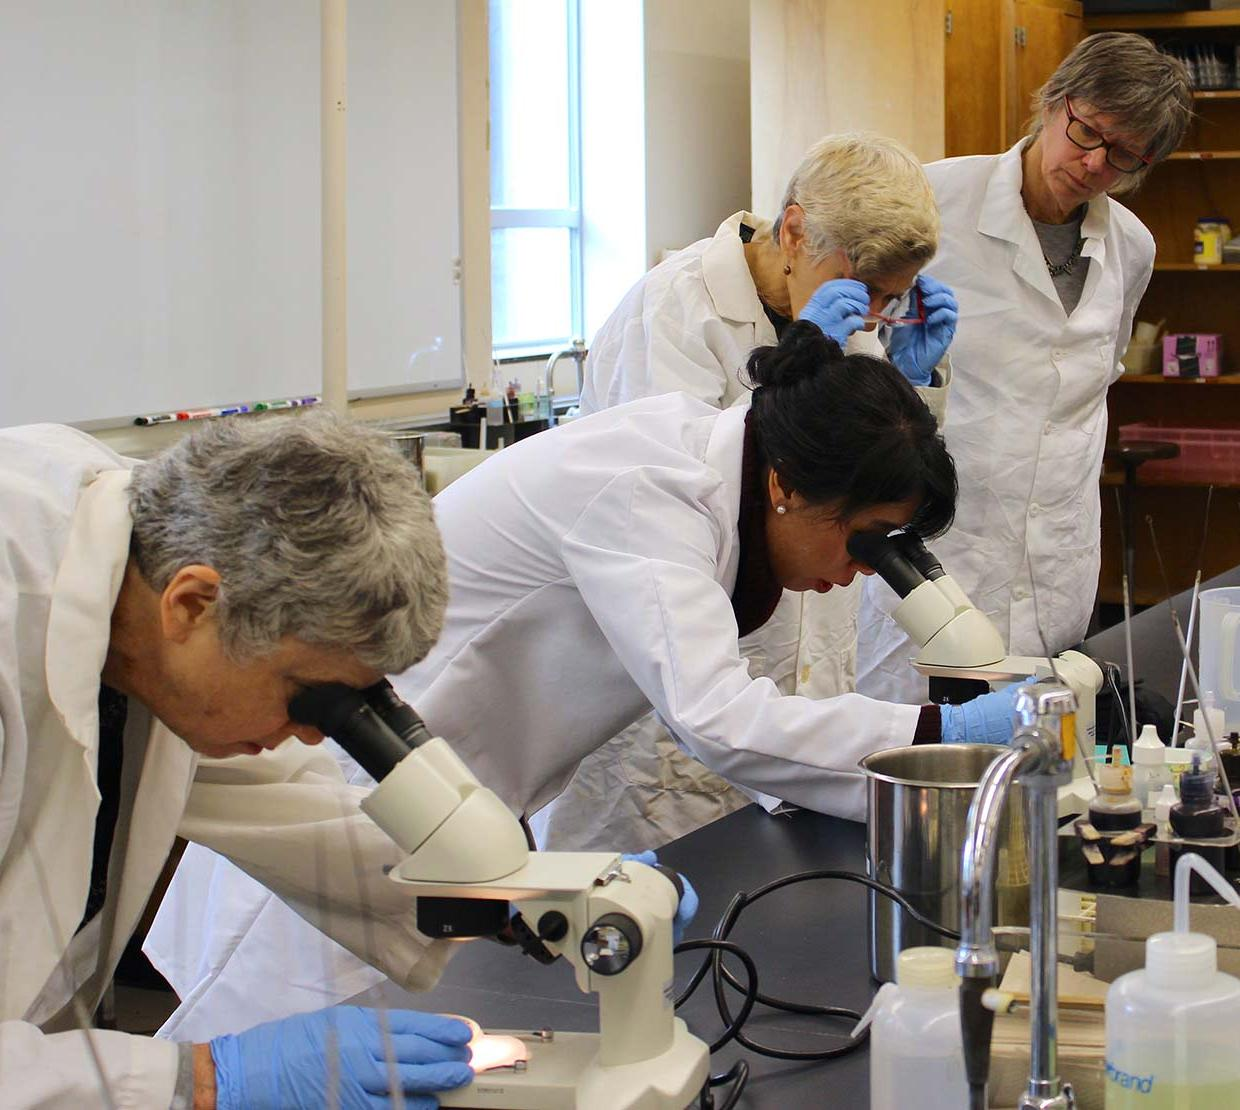 female scientists looking into microscopes in lab